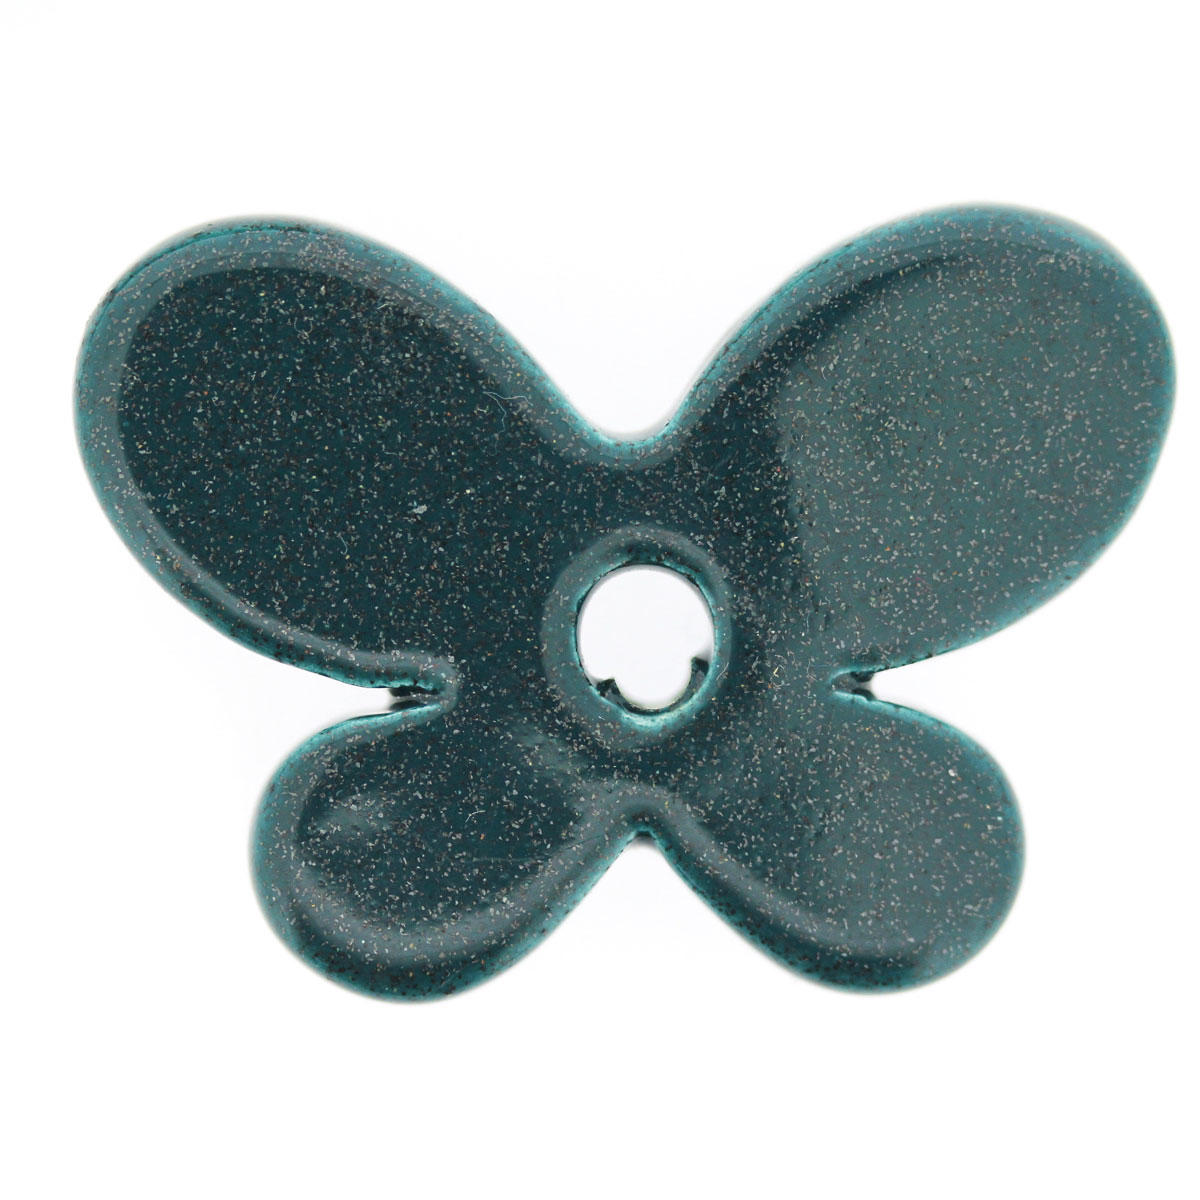 Teal Sparkle Ceramic Butterfly Bead